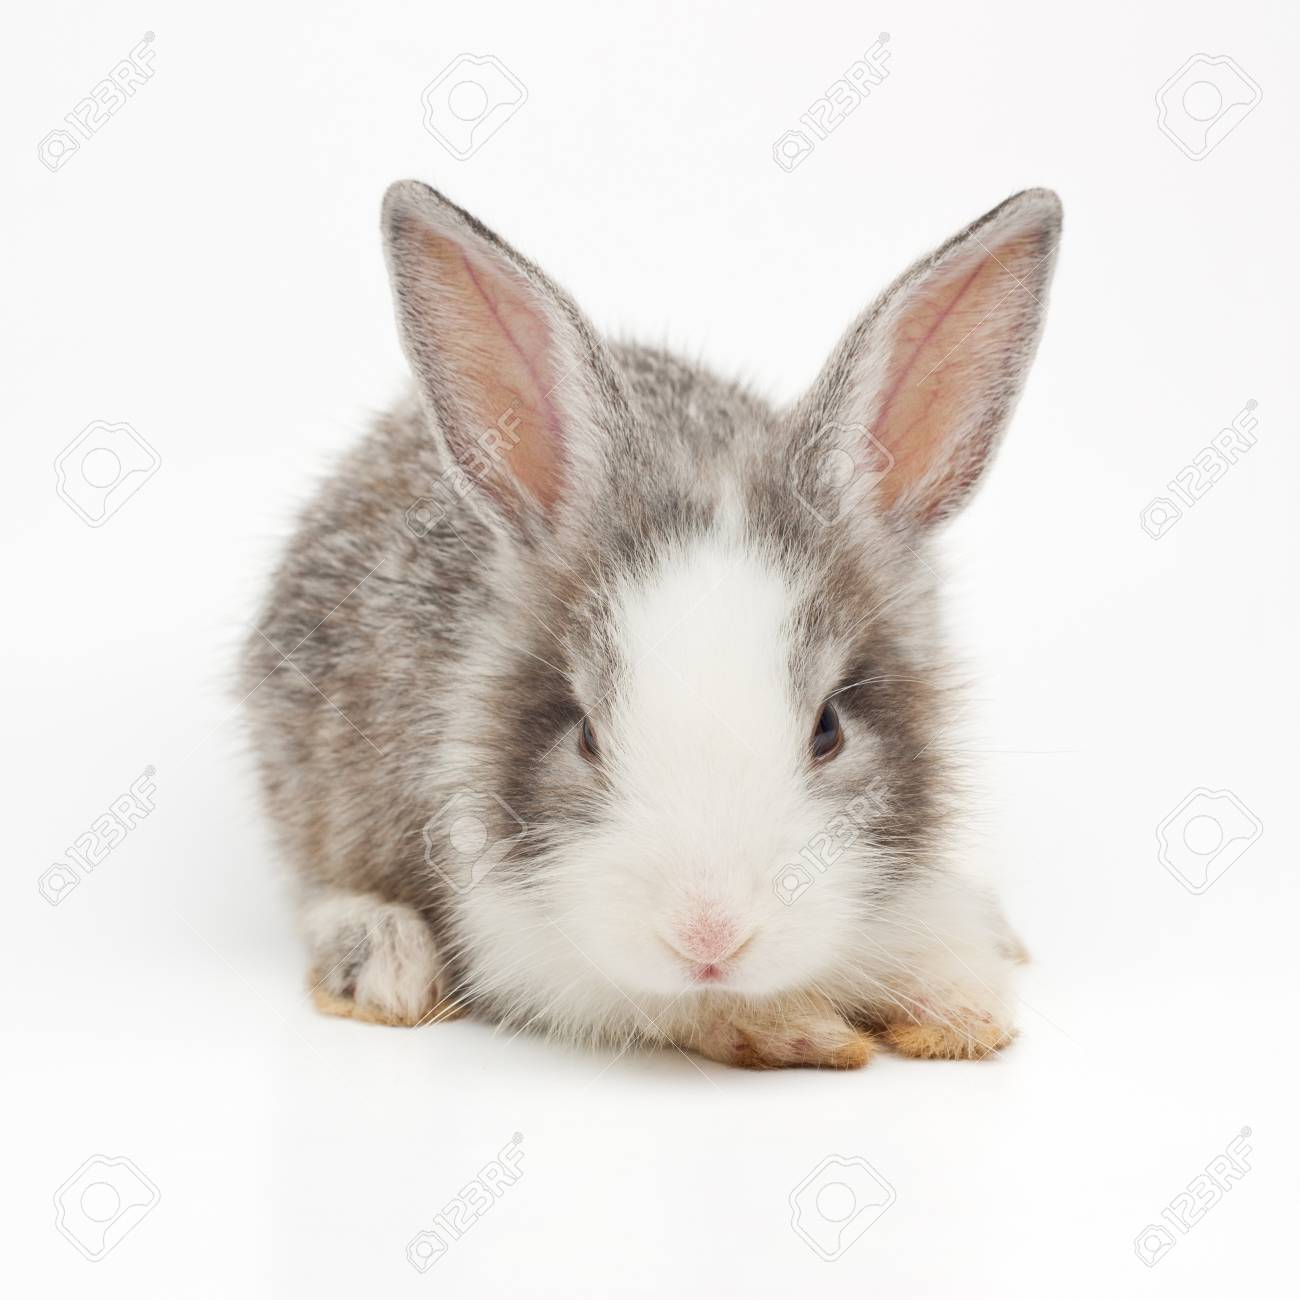 Cute bunny Stock Photo - 13814605